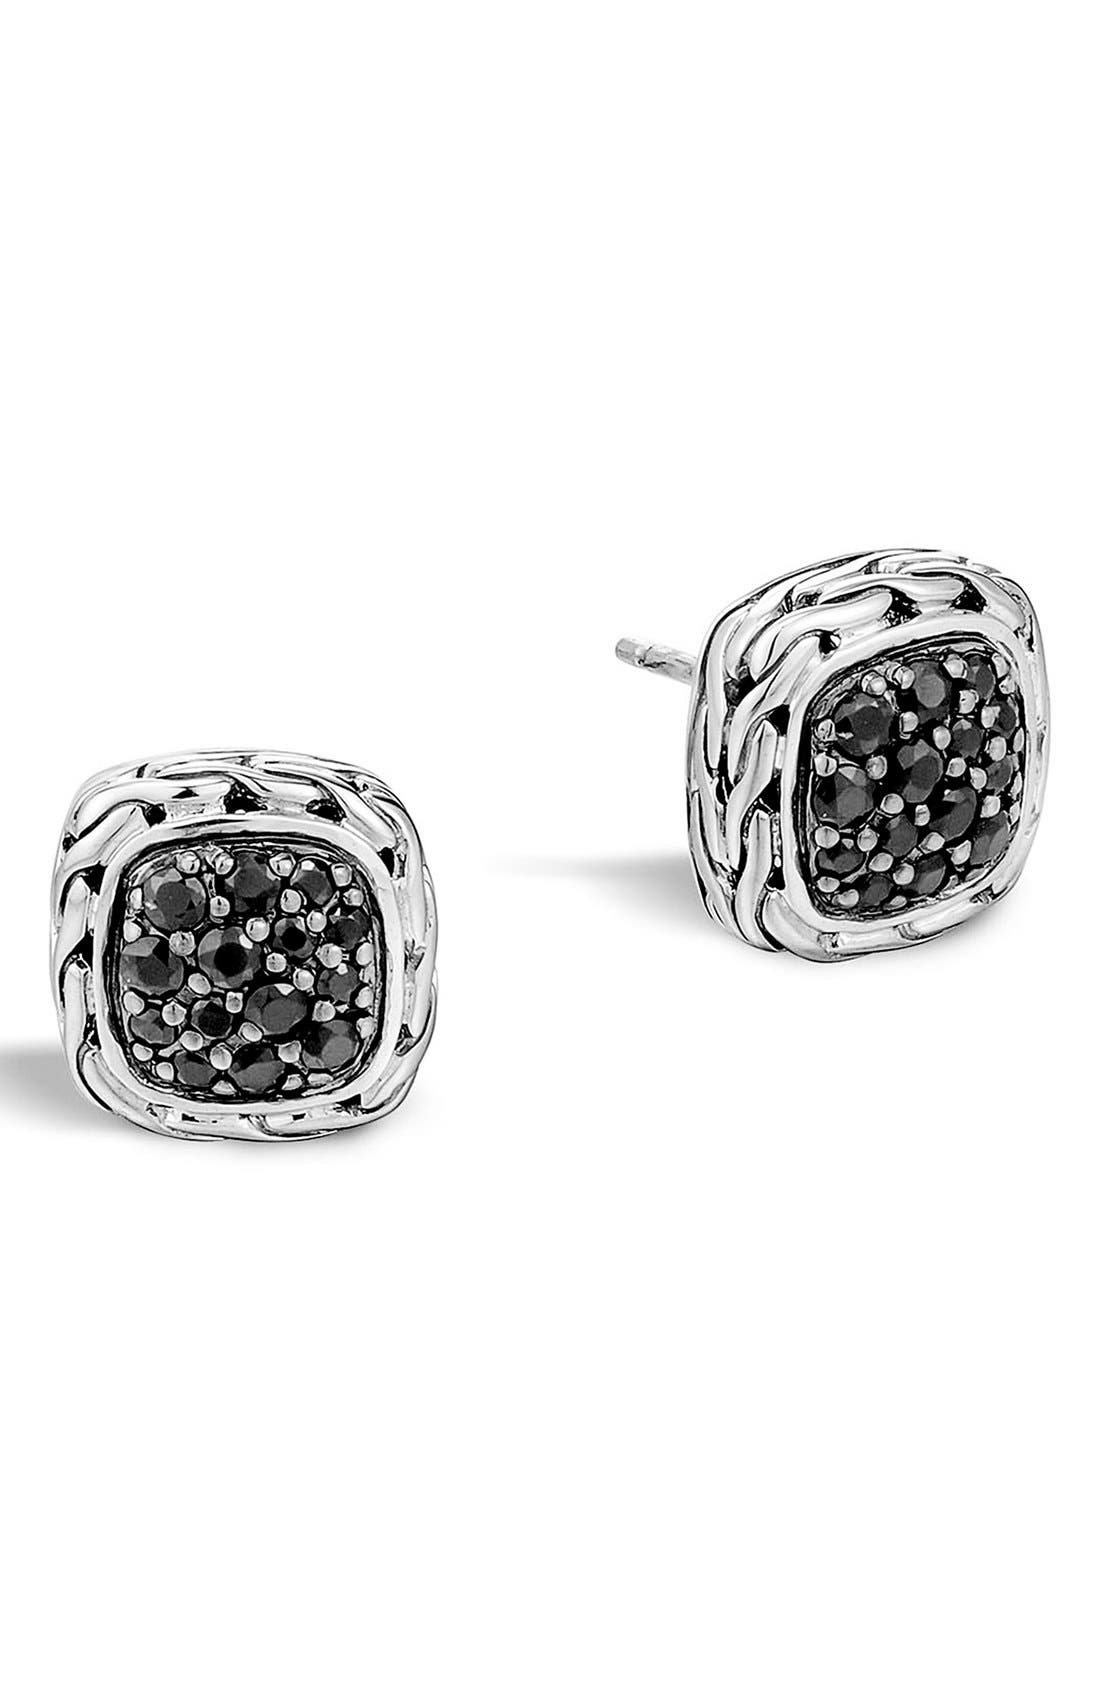 Alternate Image 1 Selected - John Hardy 'Classic Chain' Small Square Stud Earrings